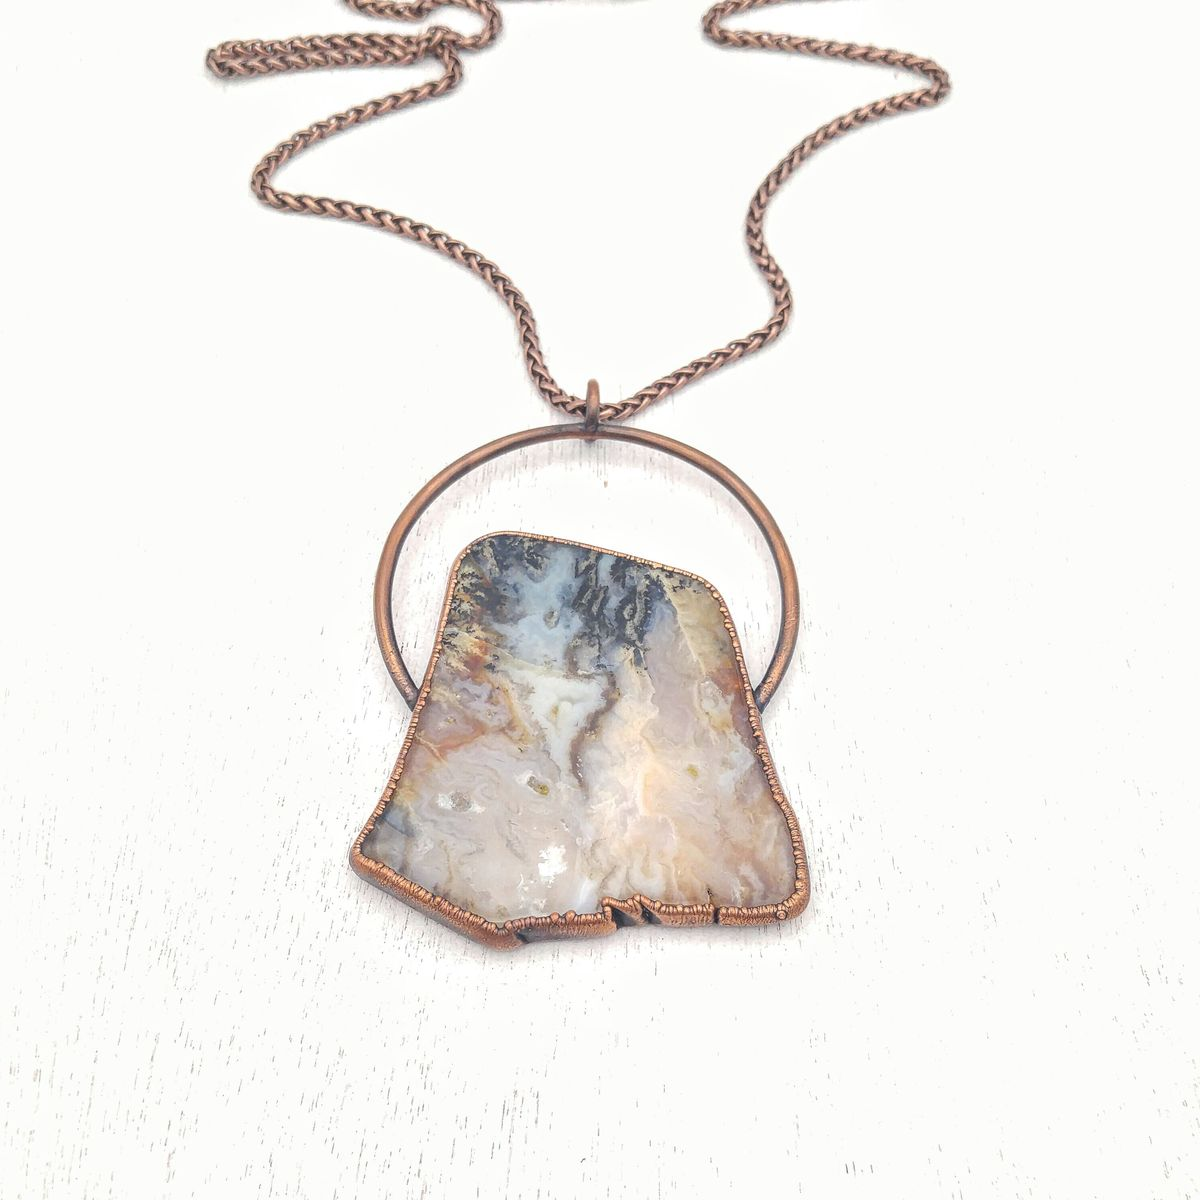 Graveyard Agate Orb Necklace - product images  of